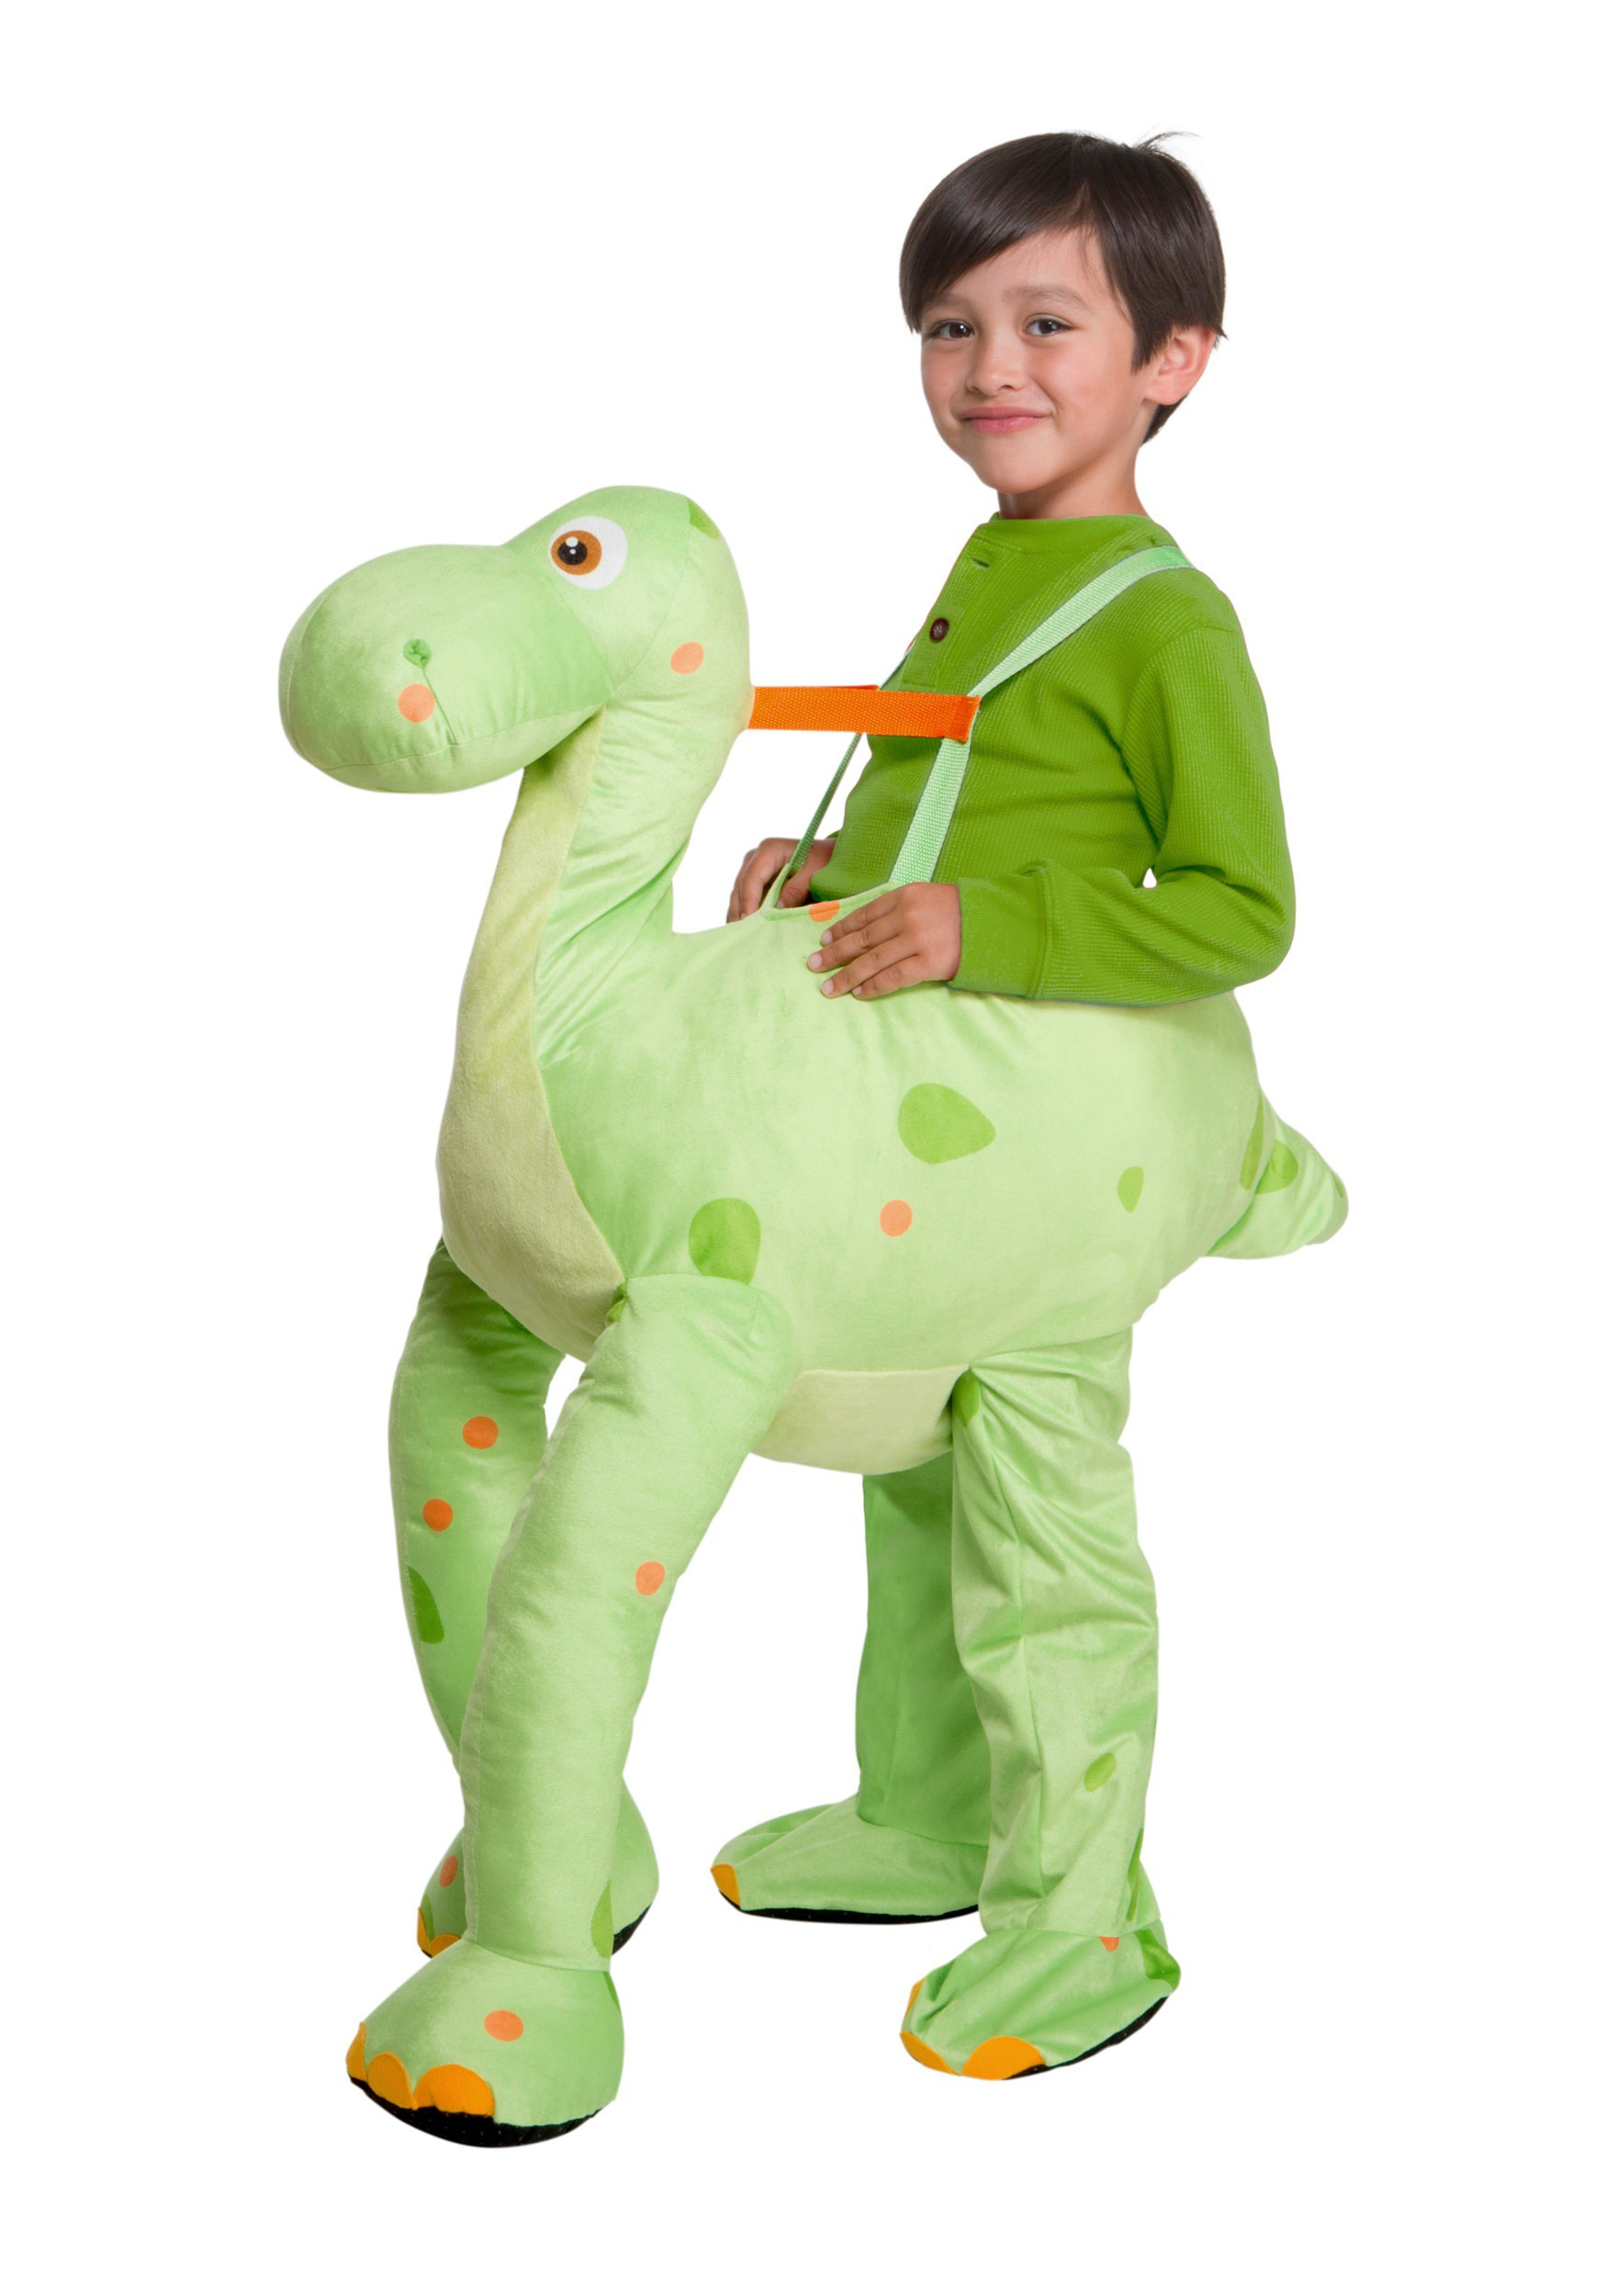 Green Dinosaur Costume For Toddlers